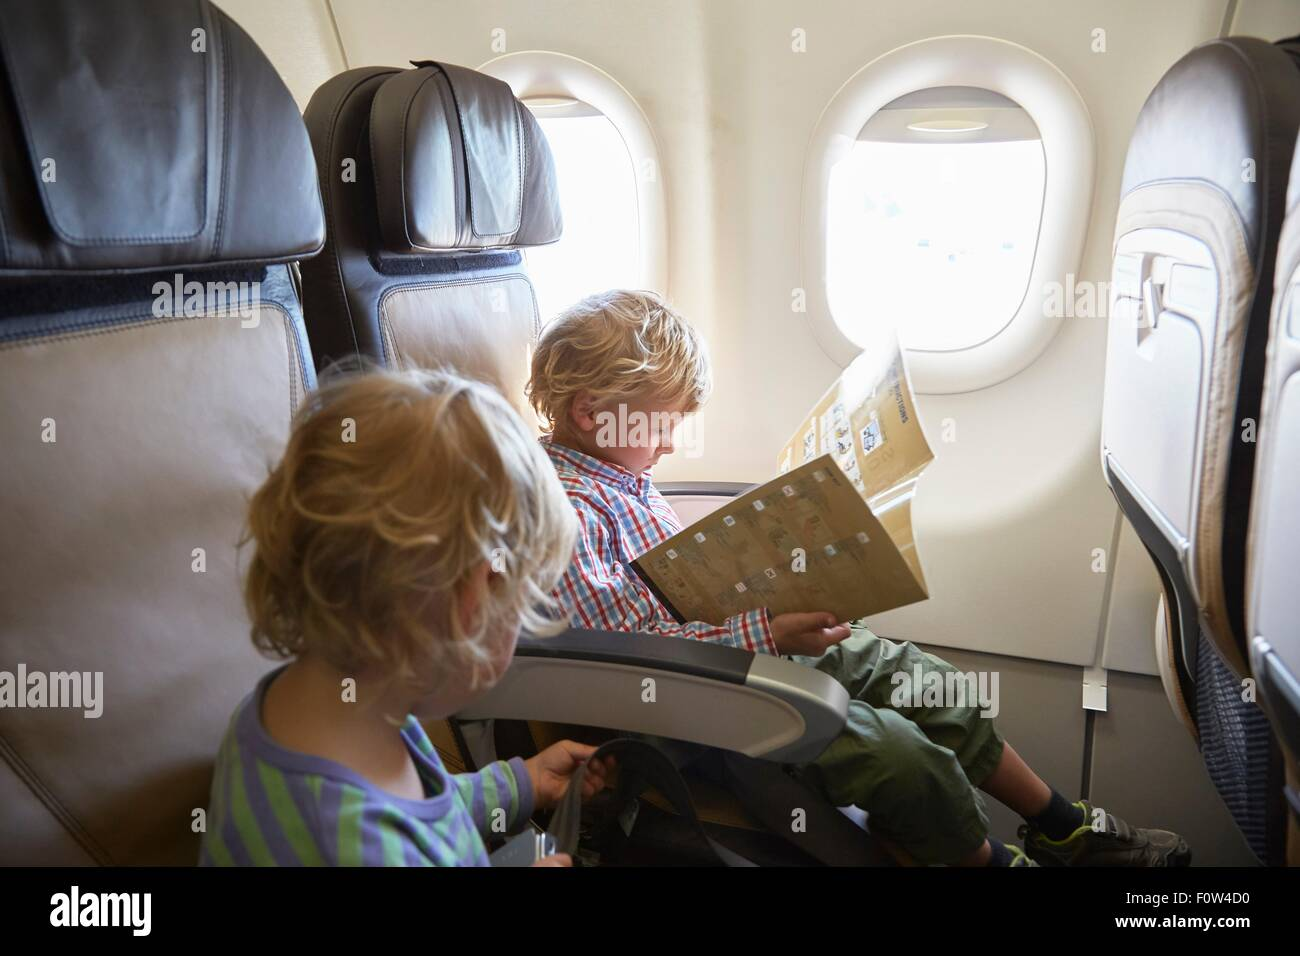 Boys seated in airplane - Stock Image